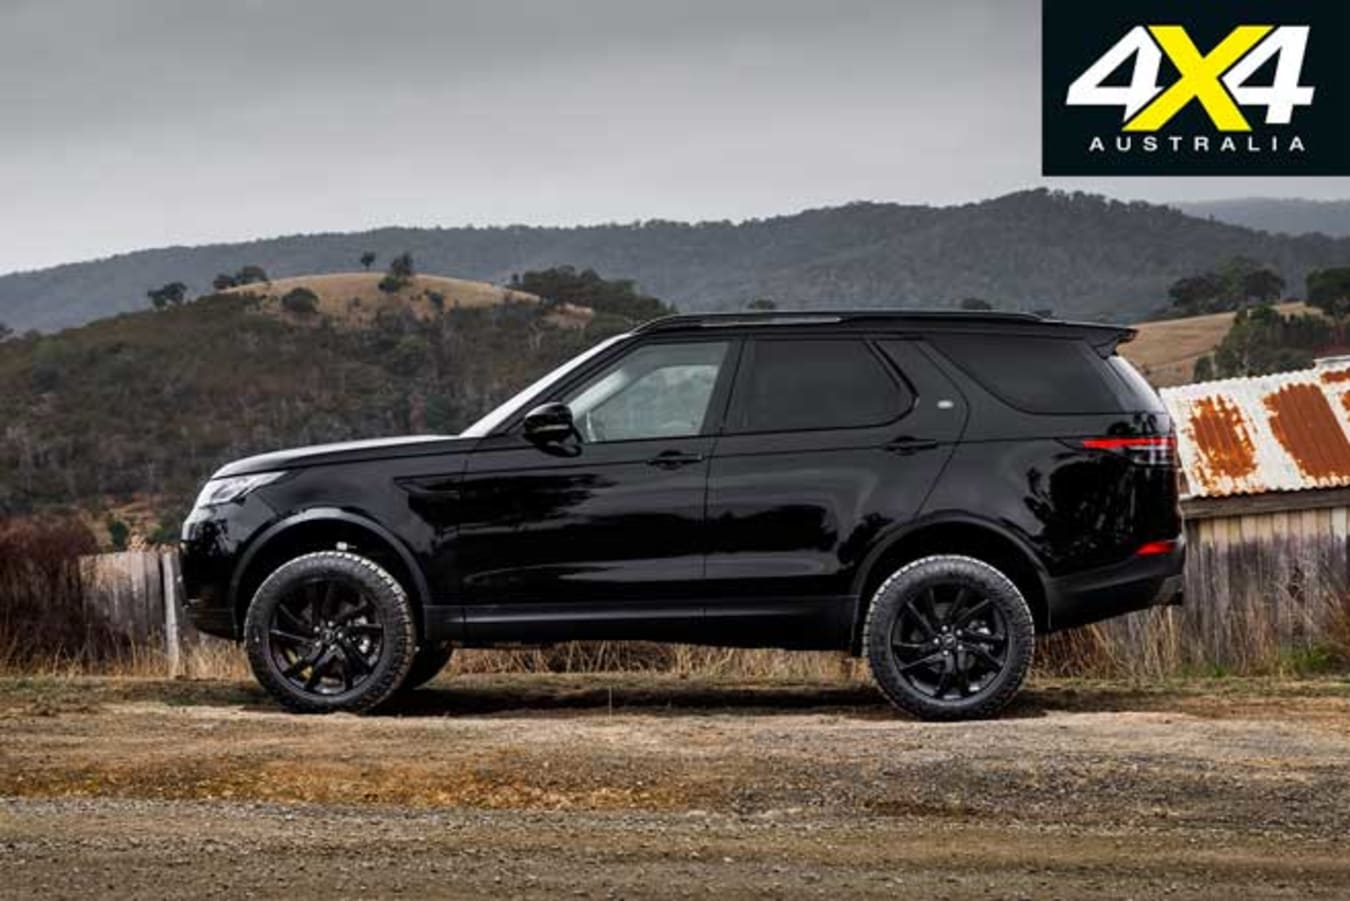 2019 Land Rover Discovery SD 4 Side Profile Jpg